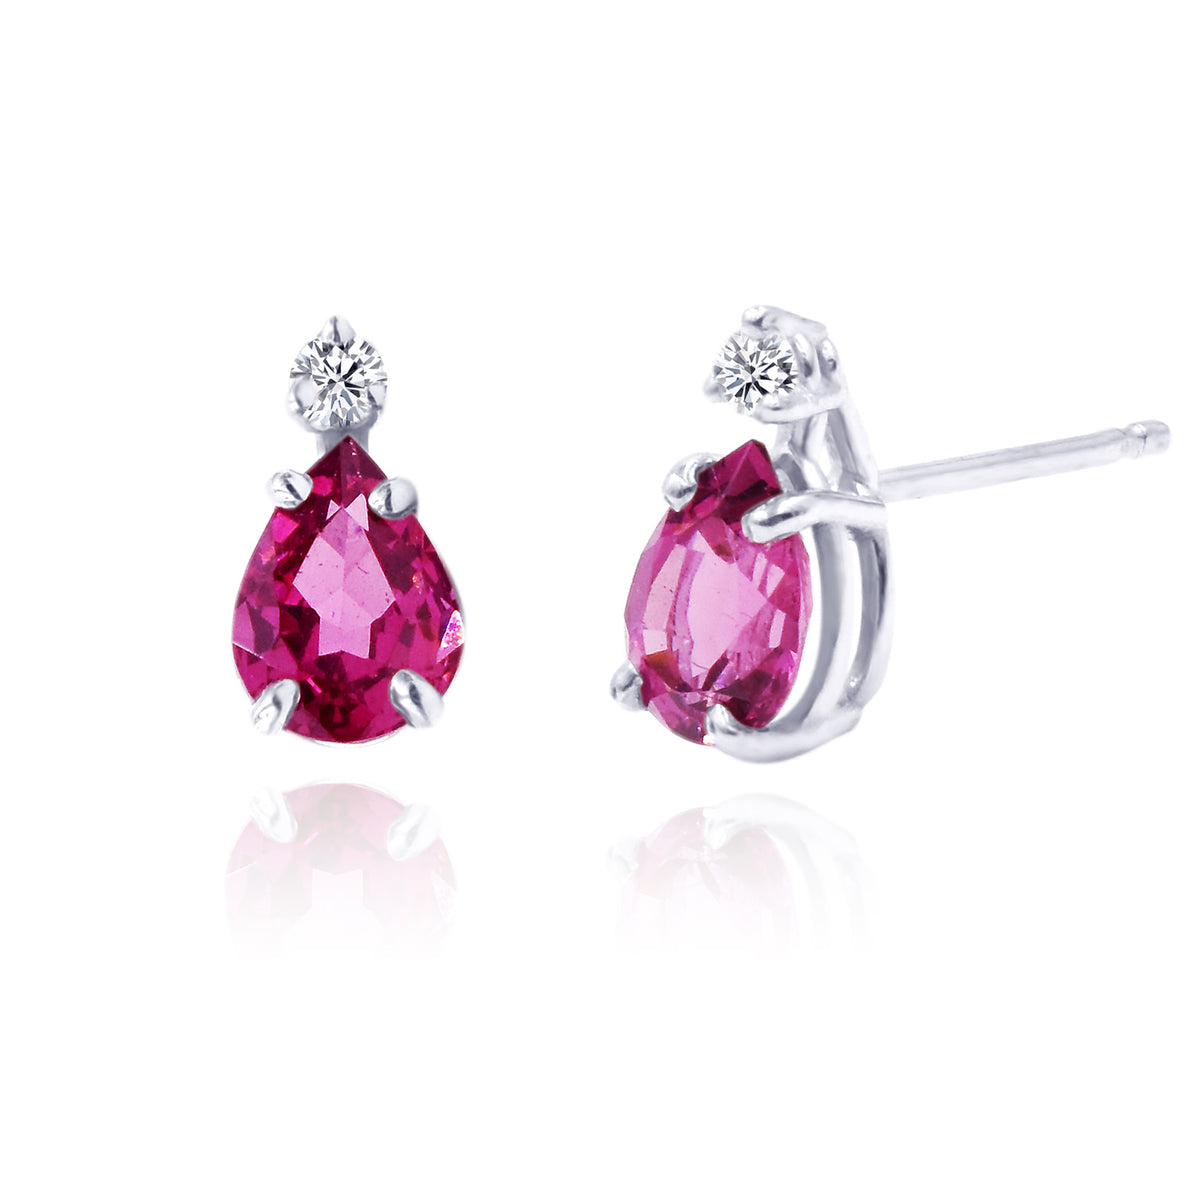 14K White Gold Rhodolite Garnet and Diamond Stud Earrings